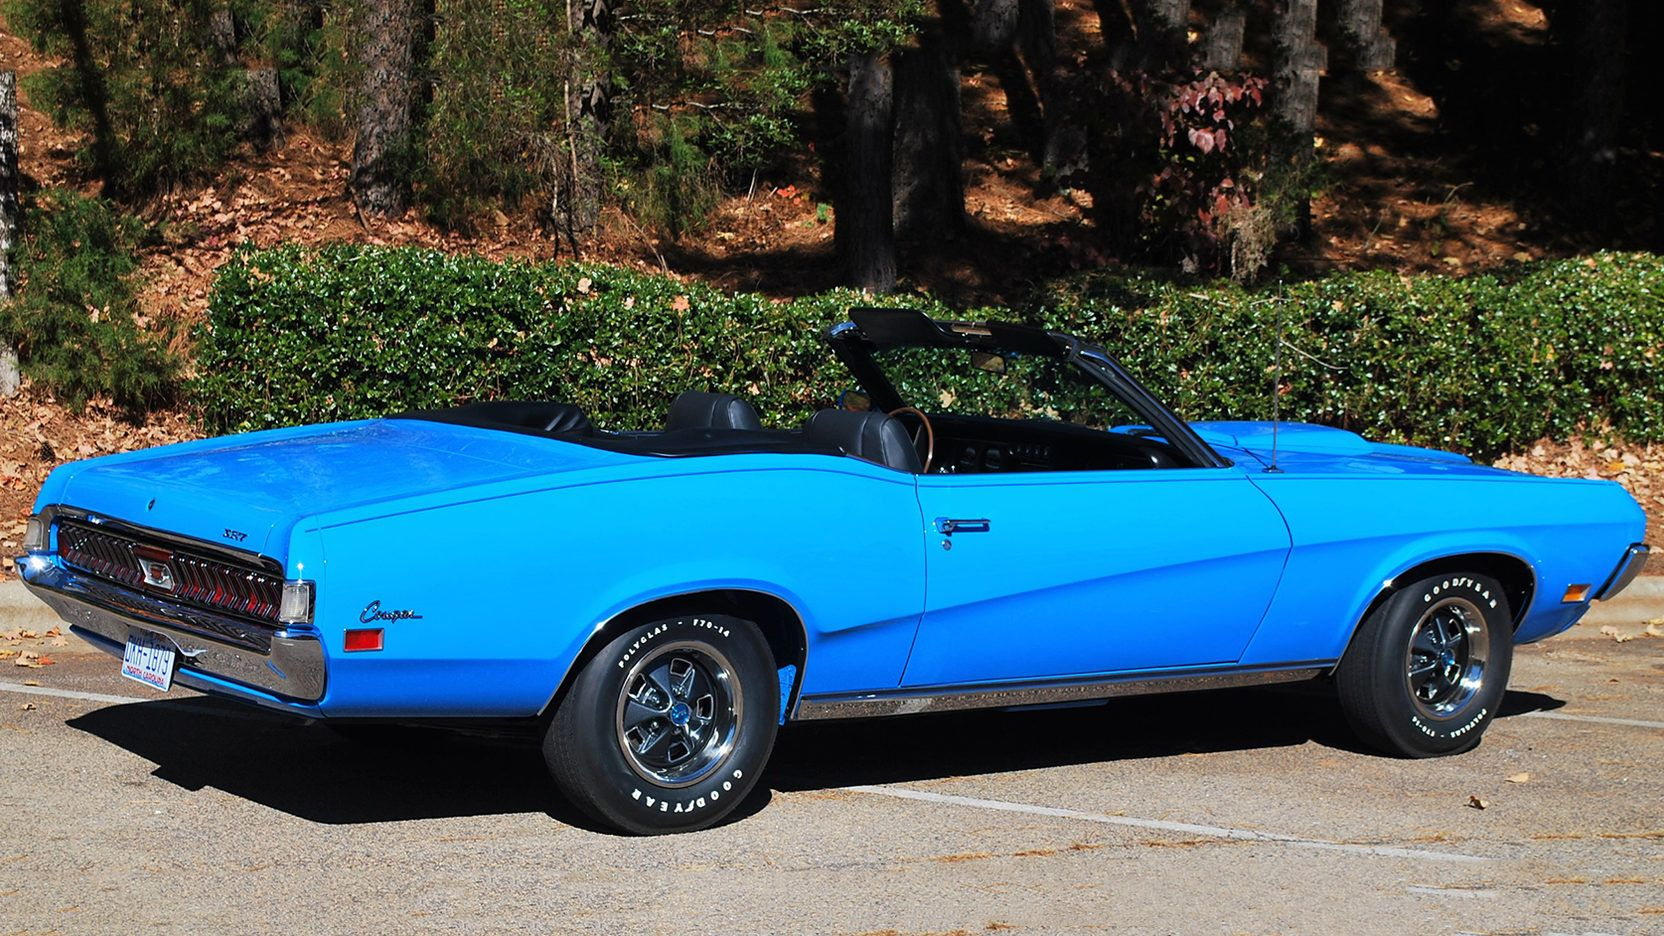 1969 mercury cougar xr 7 convertible rare 390 4 speed cars pinterest convertible cars and fancy cars